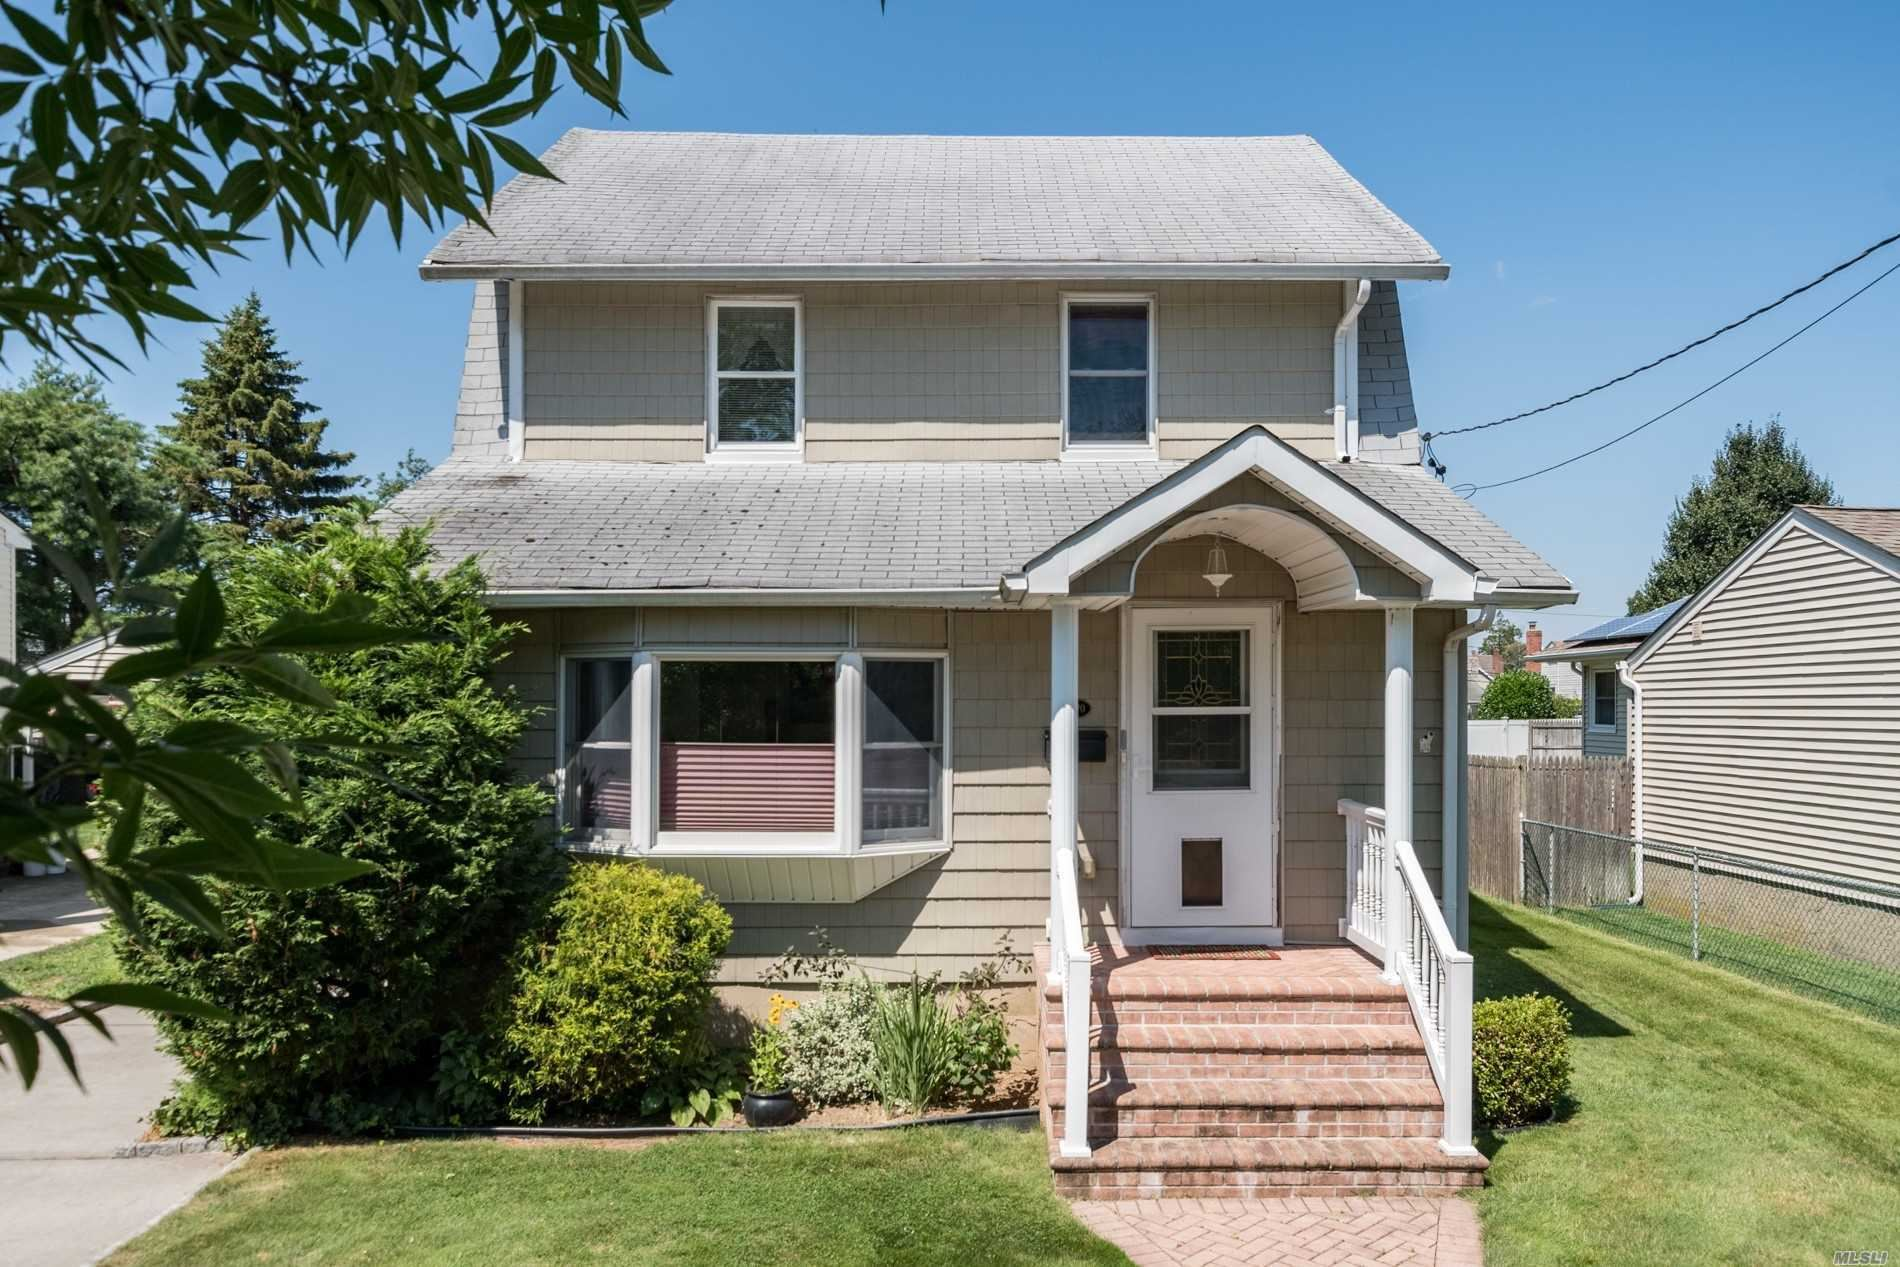 2170 Willoughby Ave, Wantagh, NY 11793 - MLS#: 3237621